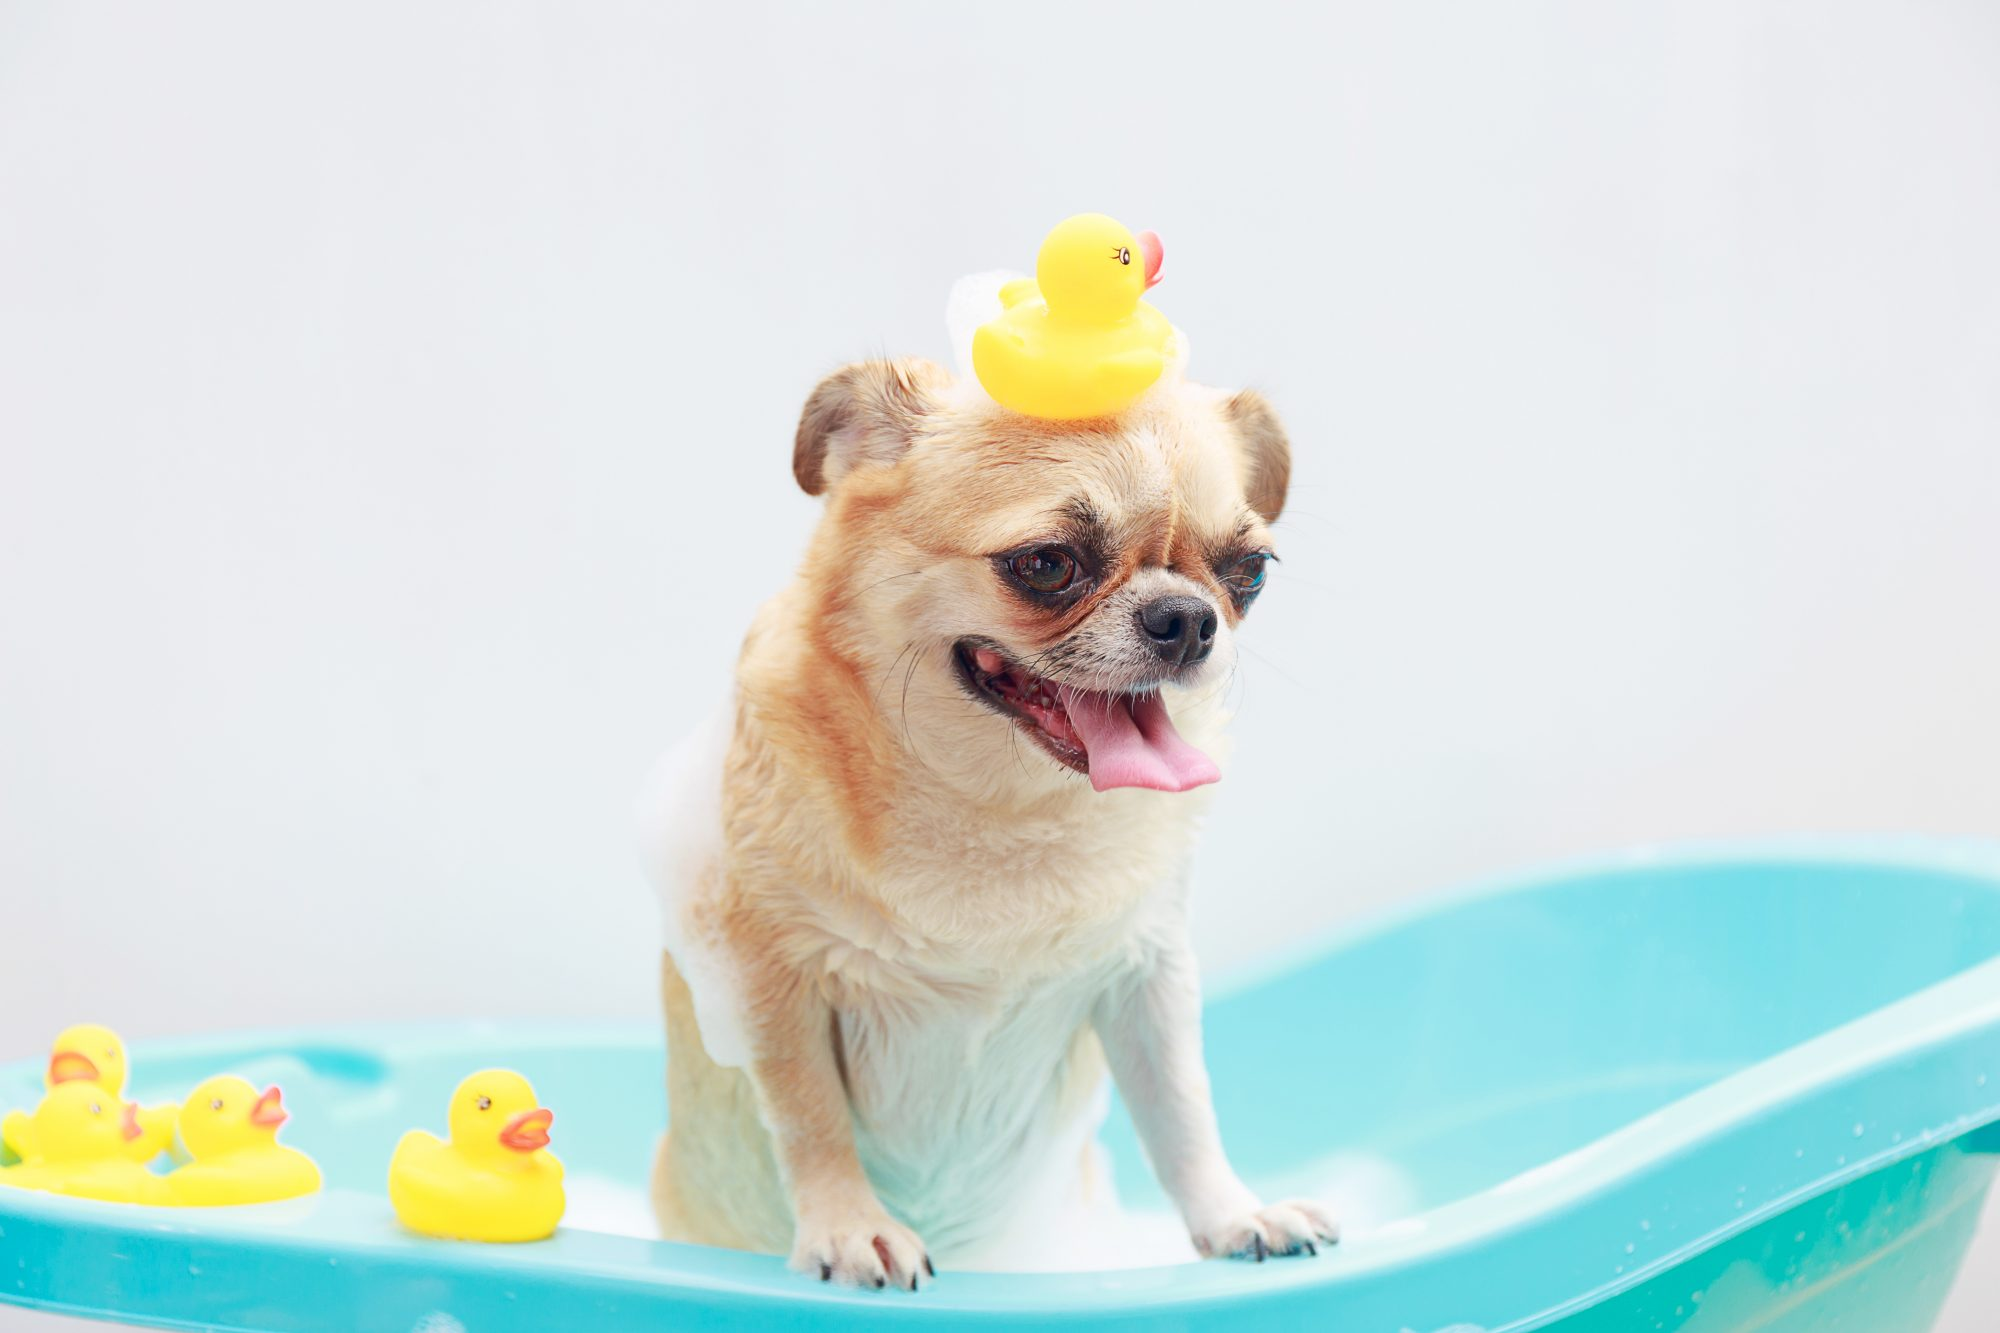 Chihuahua dog taking a shower with duck toys in blue bucket